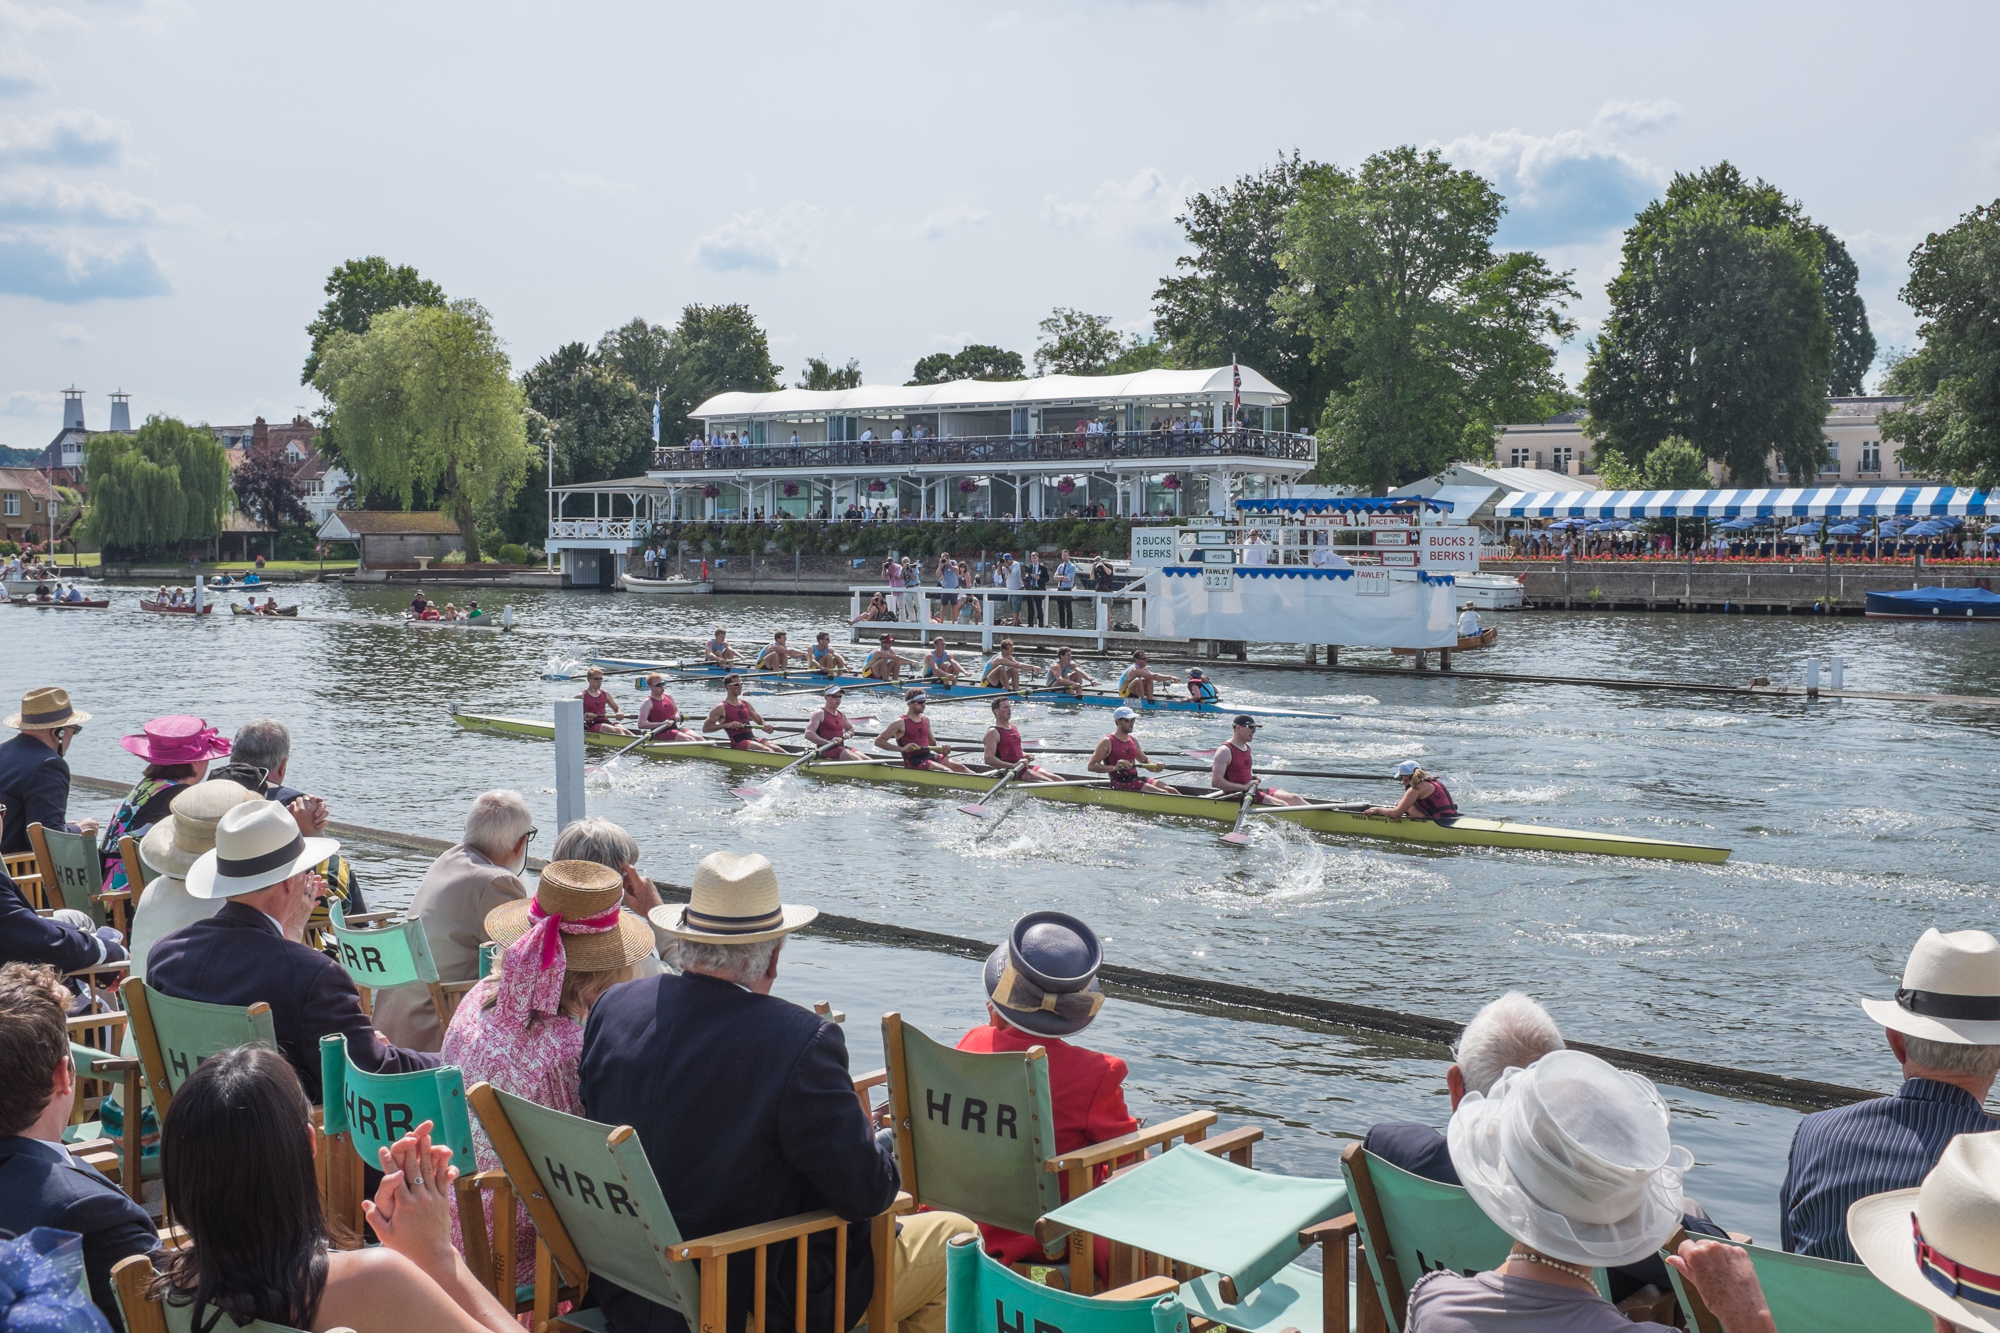 Crews from the Cambridge 99 Rowing Club and Vesta Rowing Club battle it out for a place in the next round of the Thames Challenge Cup at Henley Royal Regatta